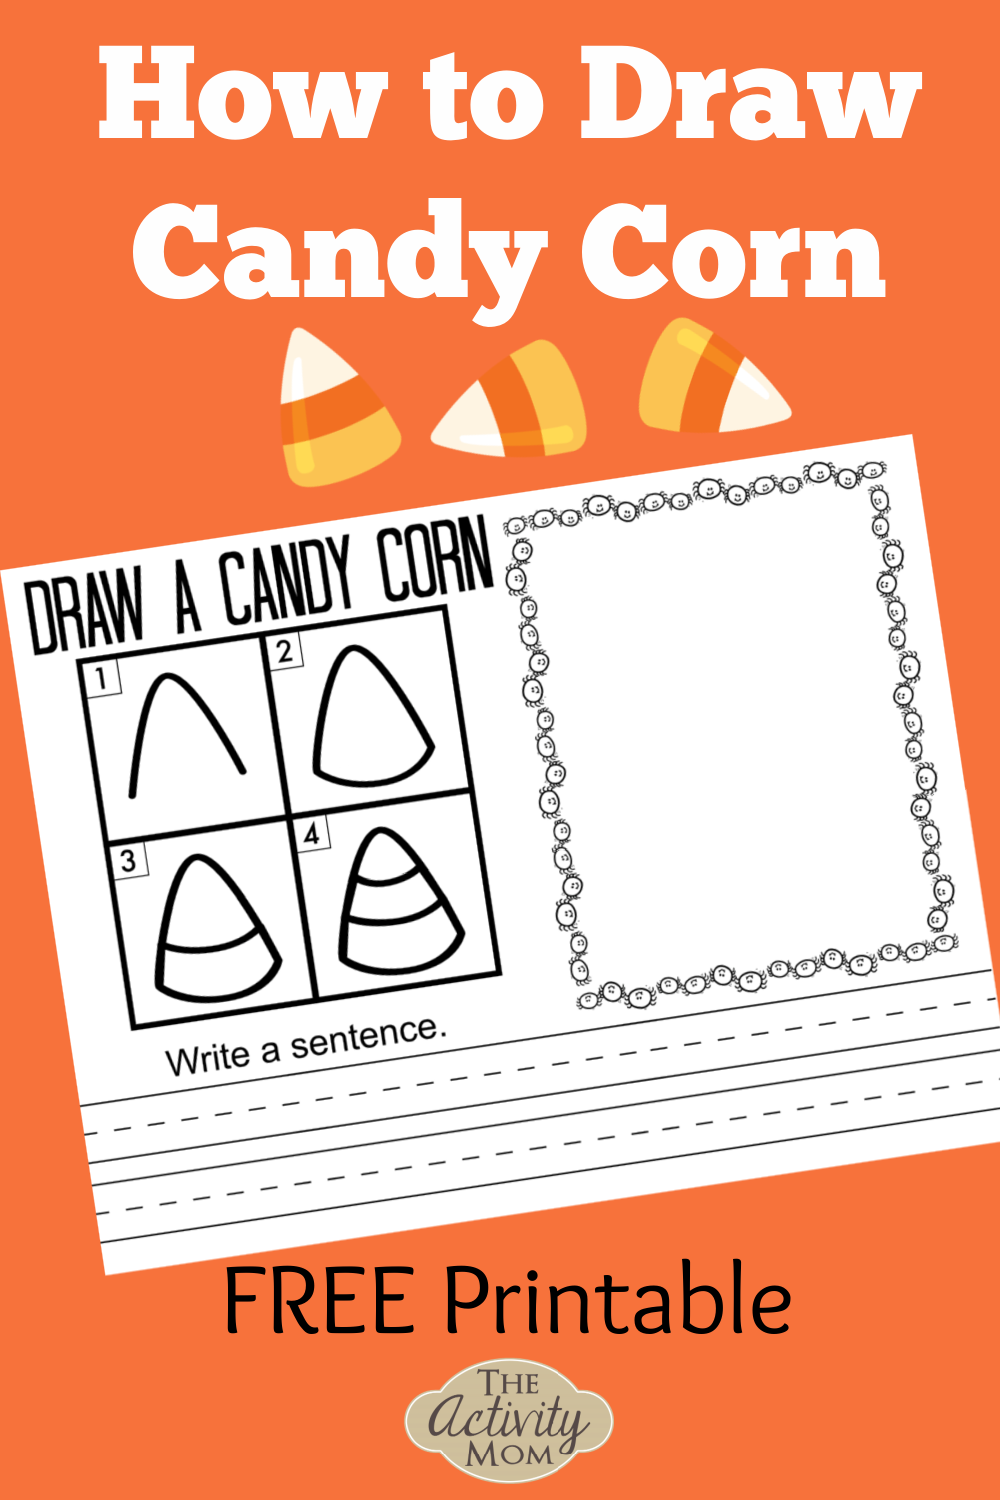 How to Draw Candy Corn for Kids